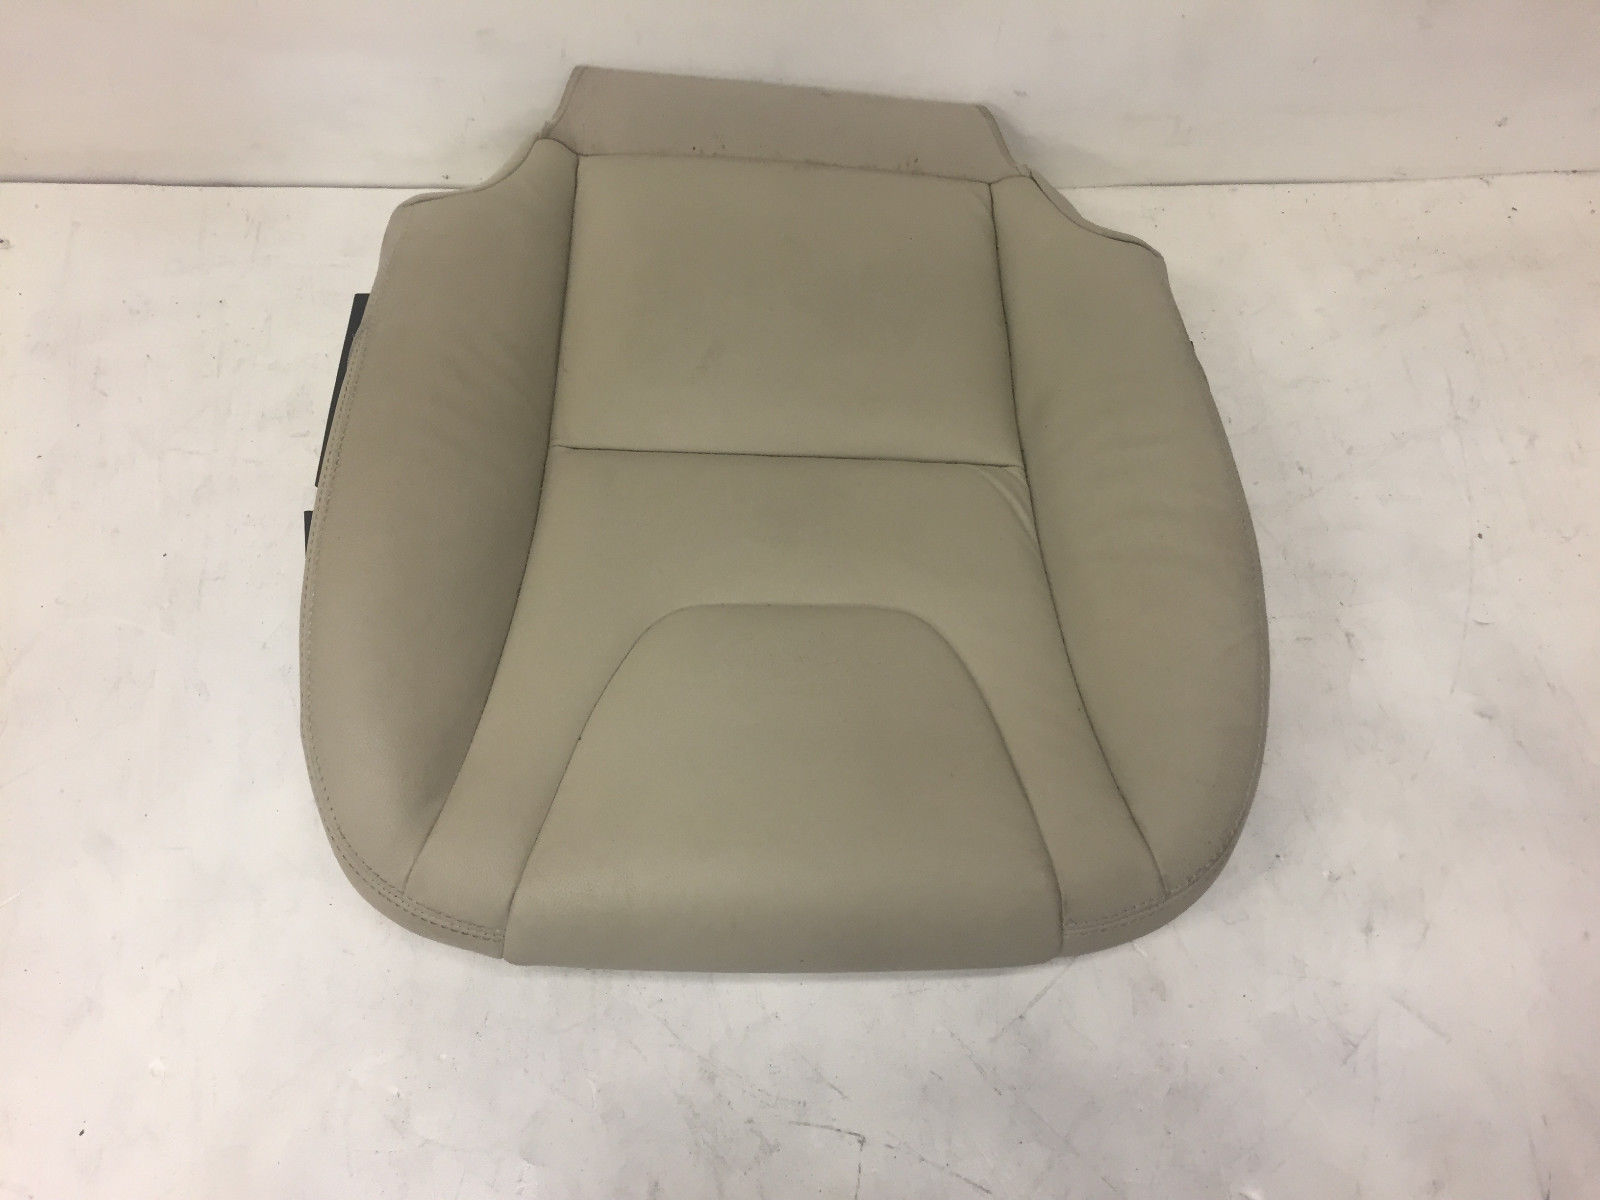 2015 Volvo V60 Front Right Passenger Lower Said White Leather Seat